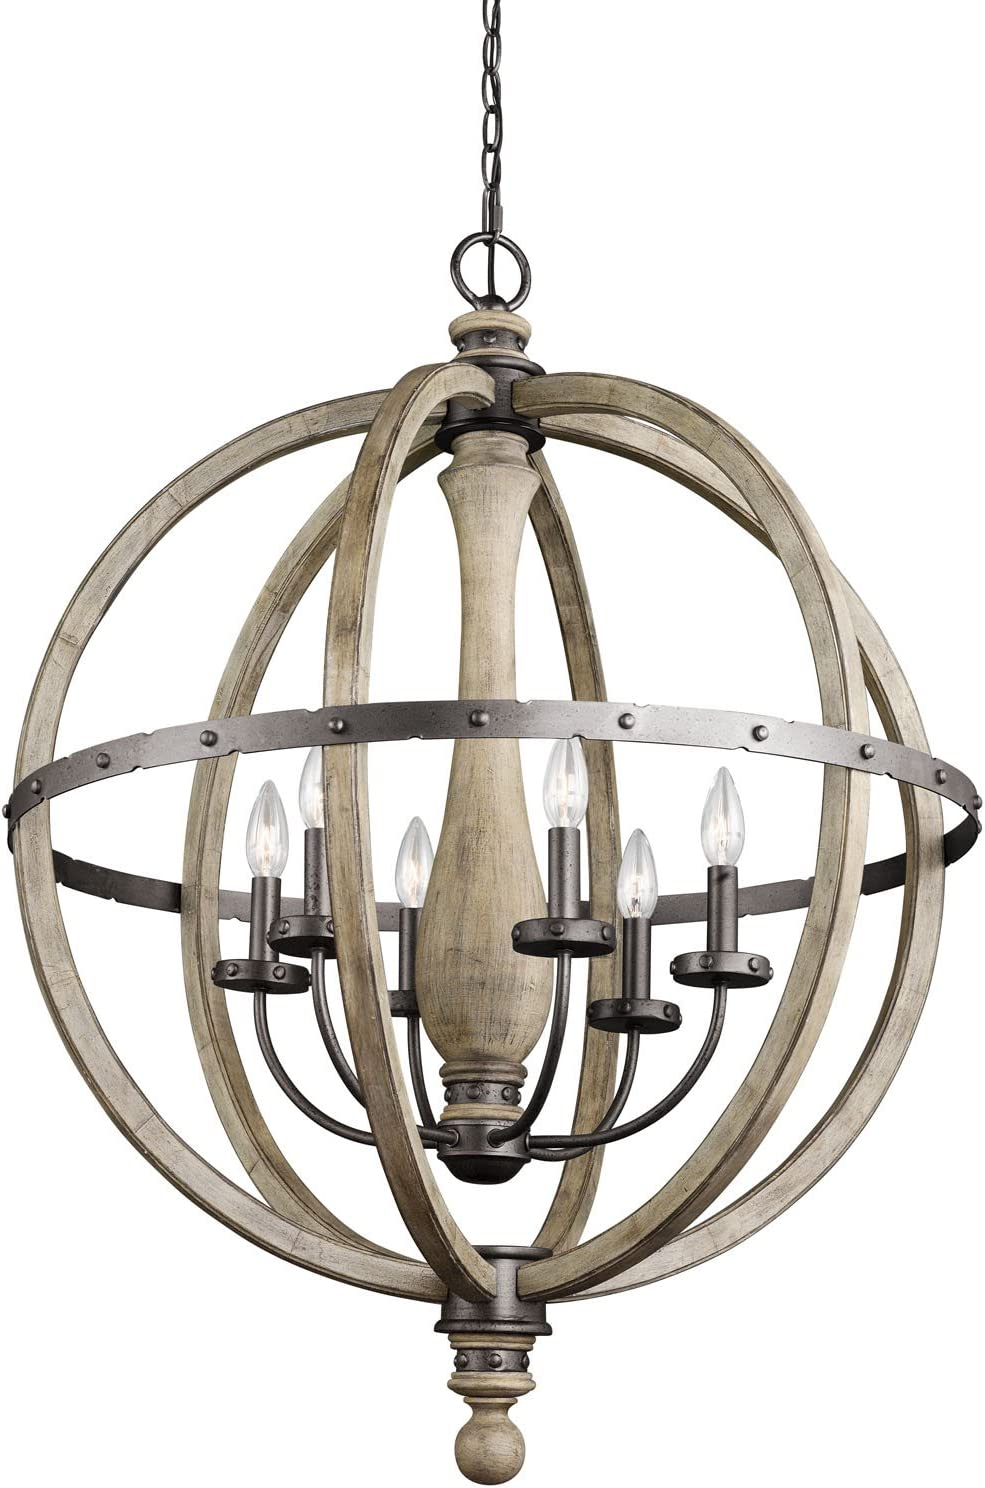 Kichler 43327DAG, Evan Candle Chandelier Light, 6 Light, 450 Watts, Distressed Antique Gray